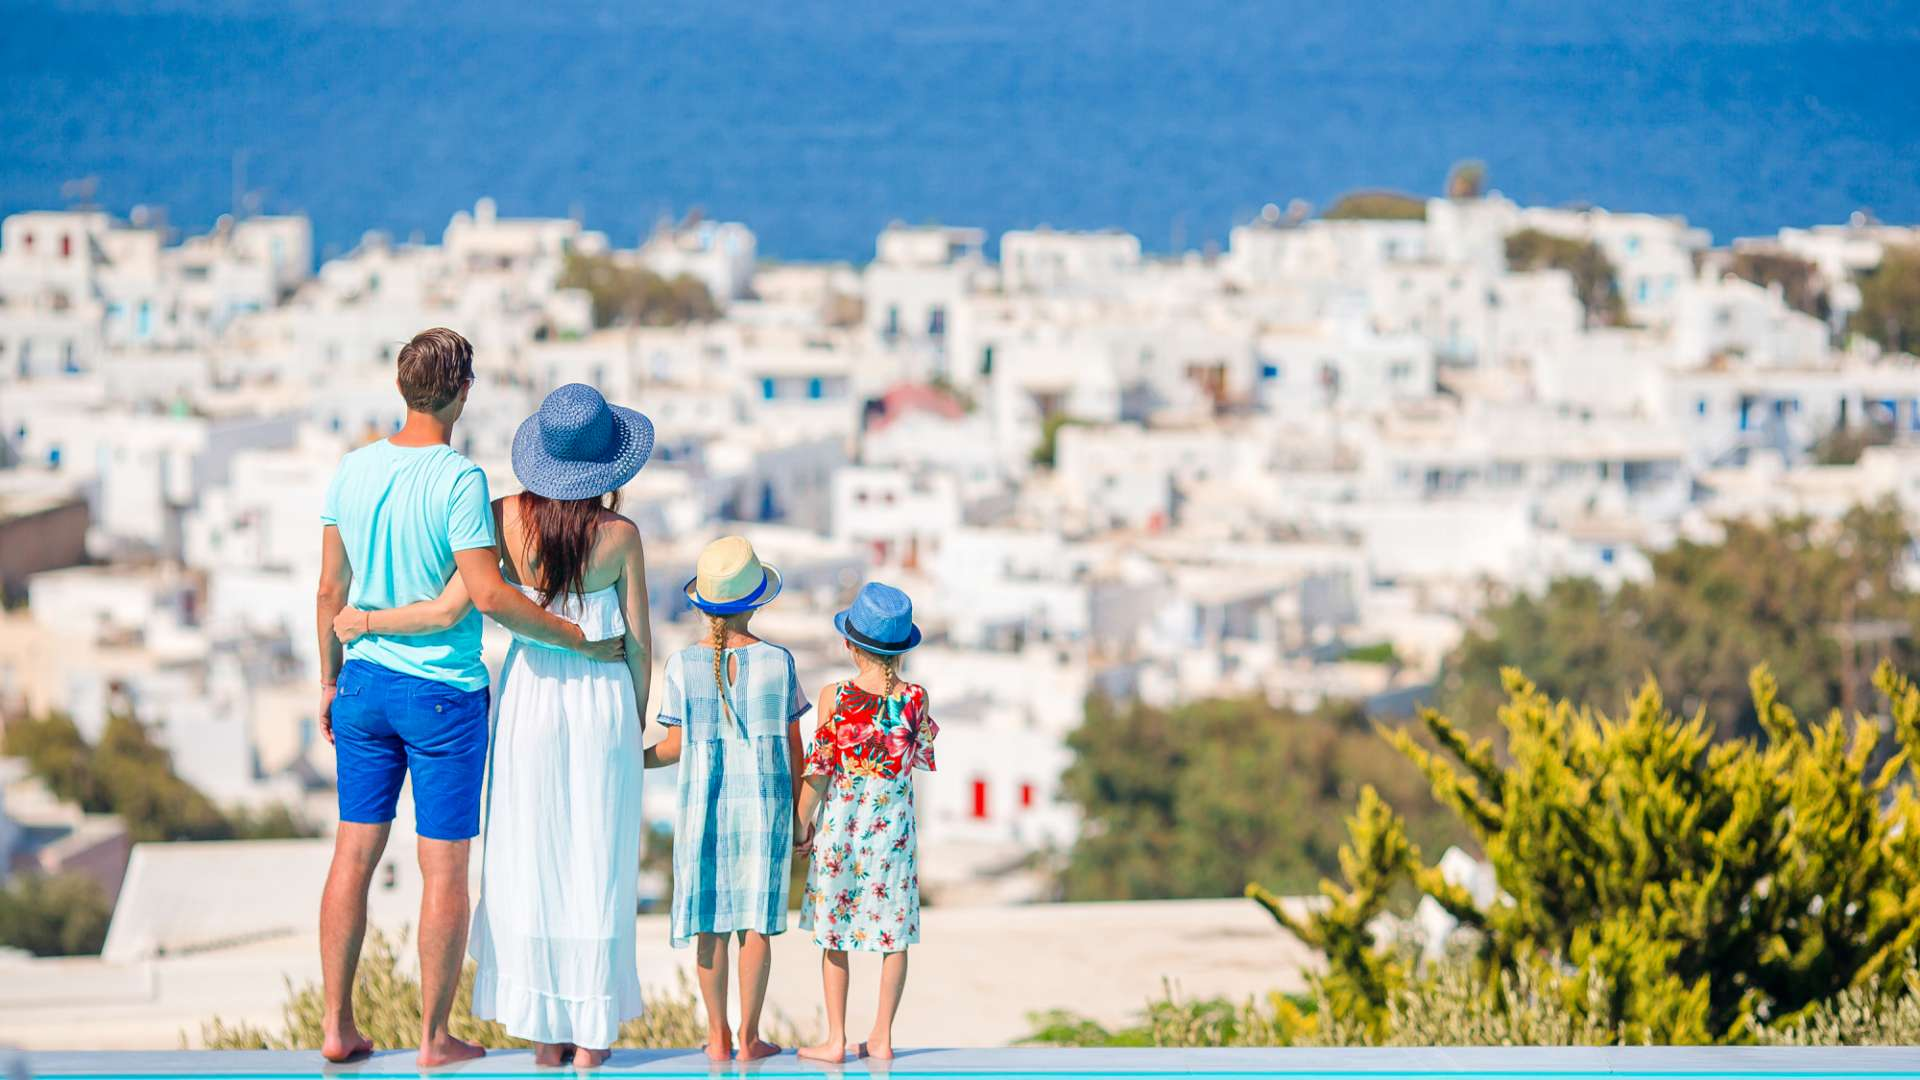 A photo of a family on holiday in Europe stood by an infinite pool taking in the view